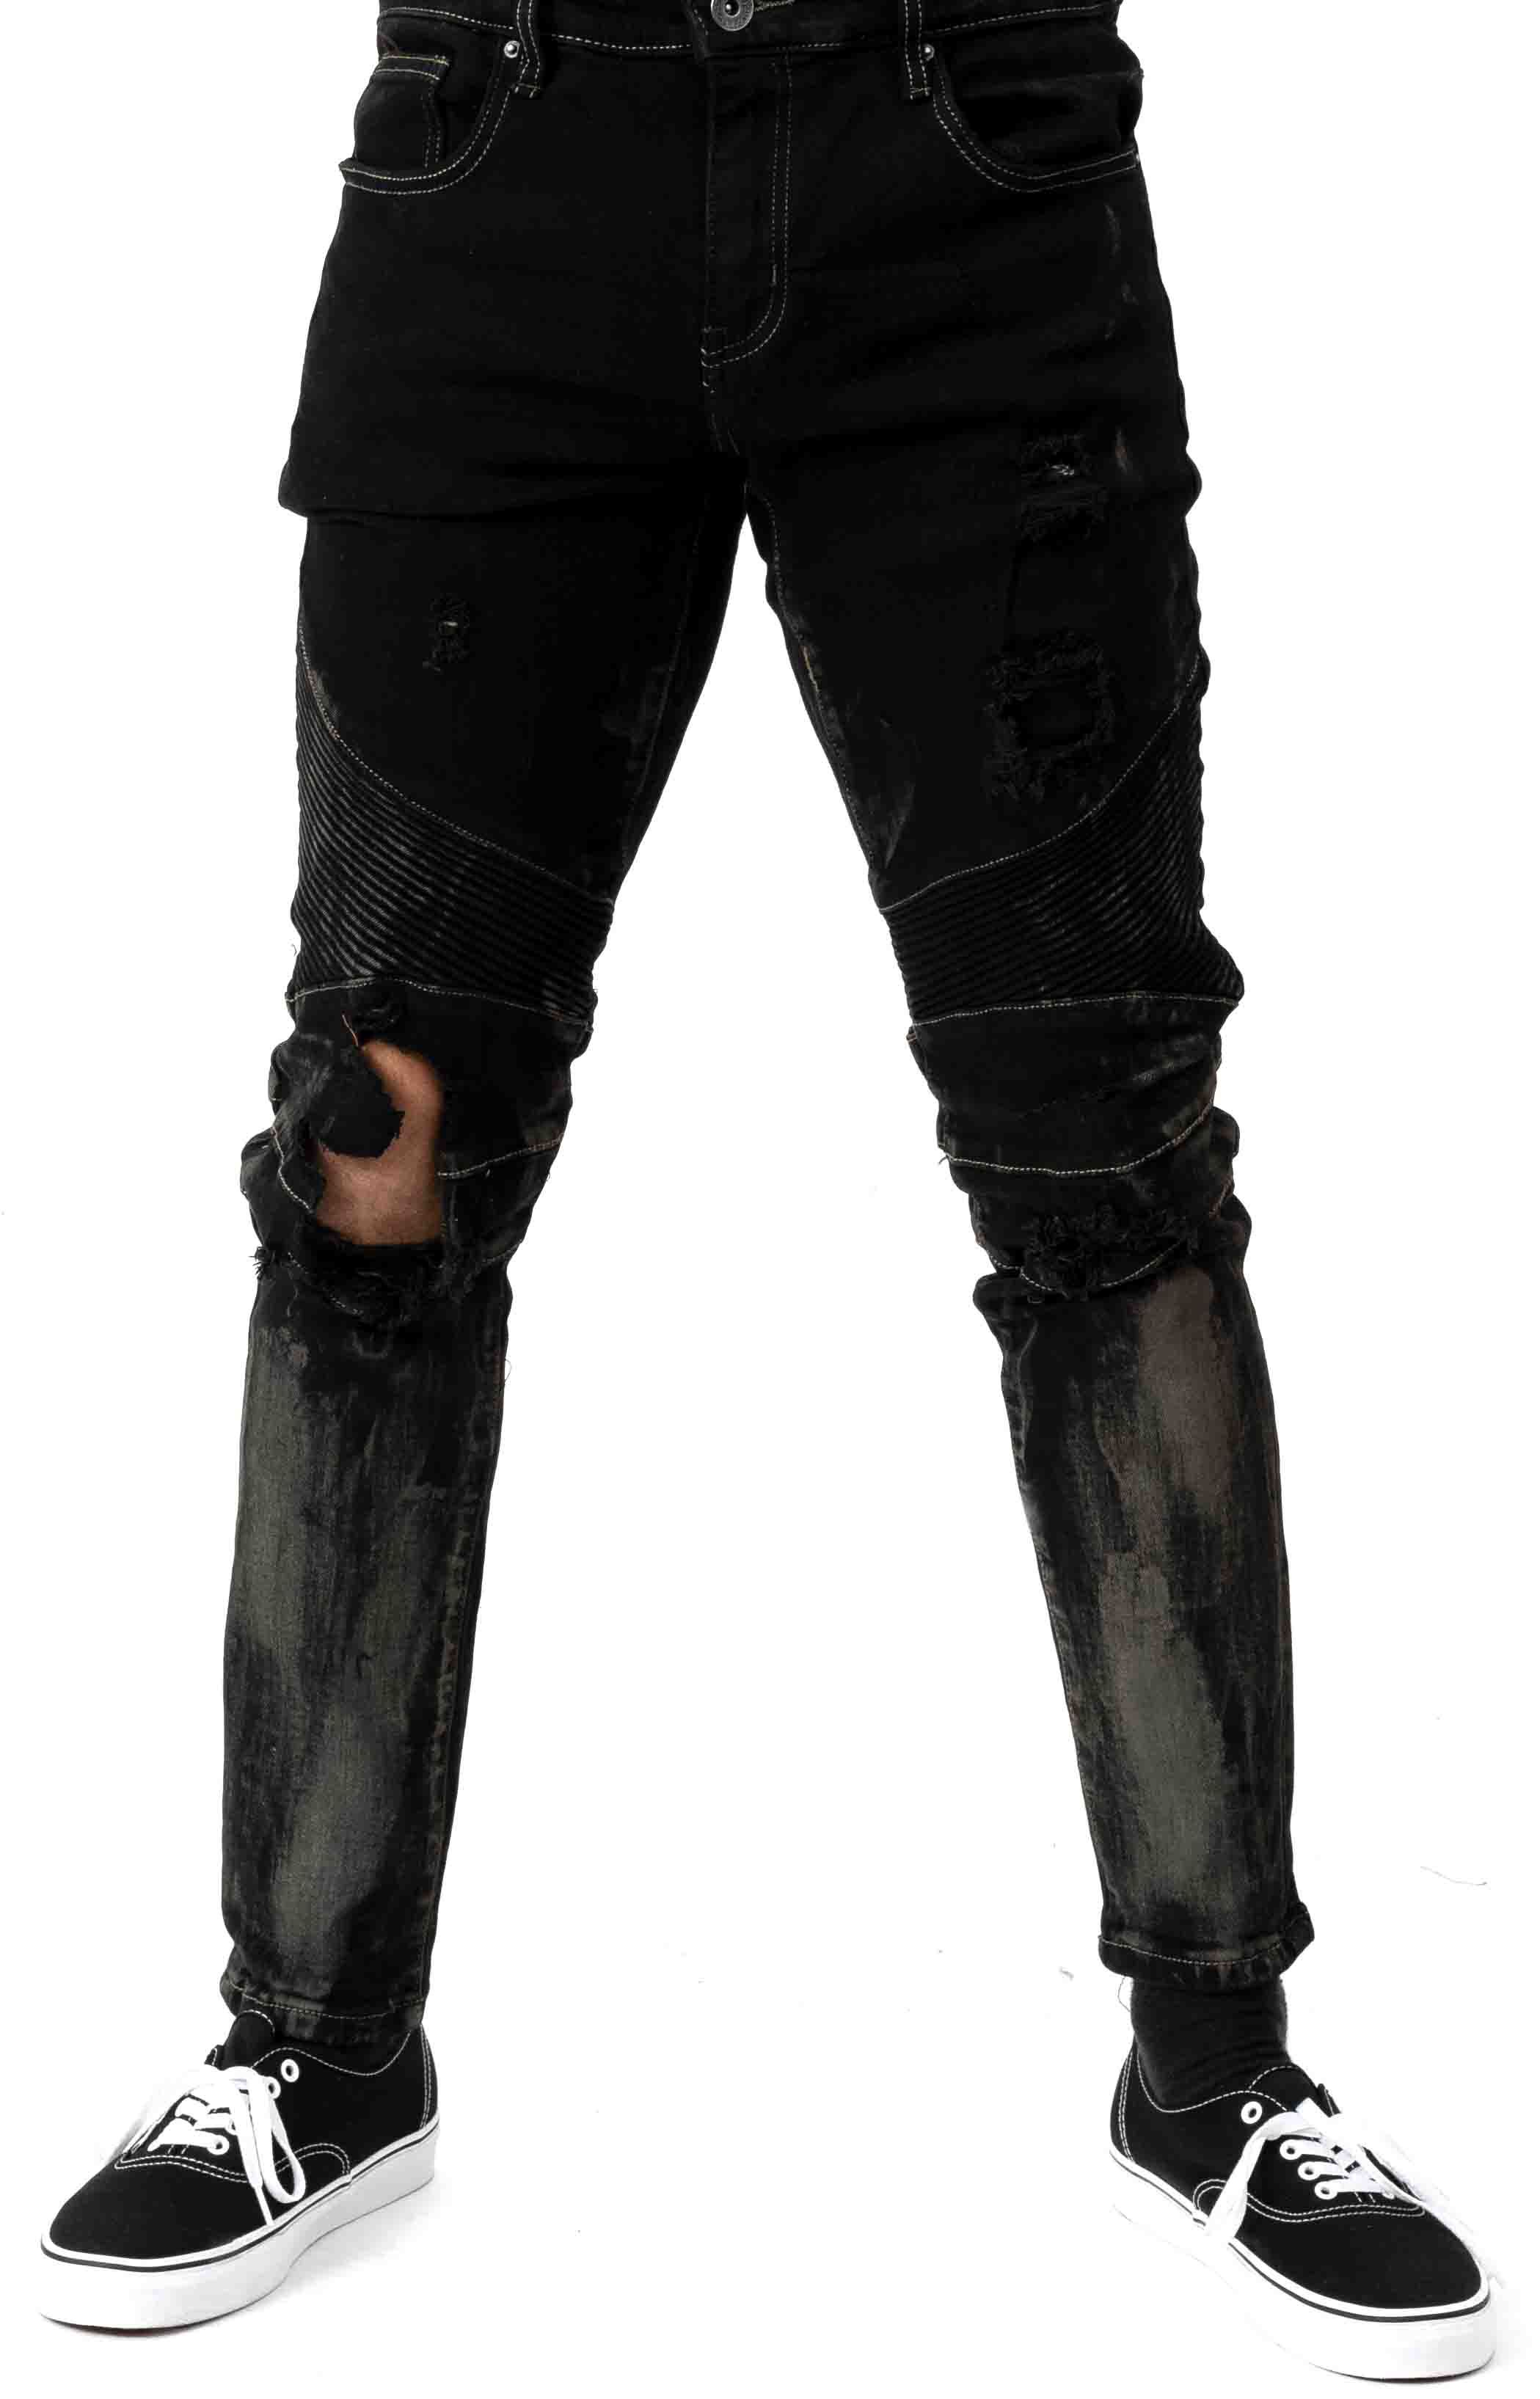 (CRYF119-119) Skywalker Denim Jeans - Dark Blue Rust